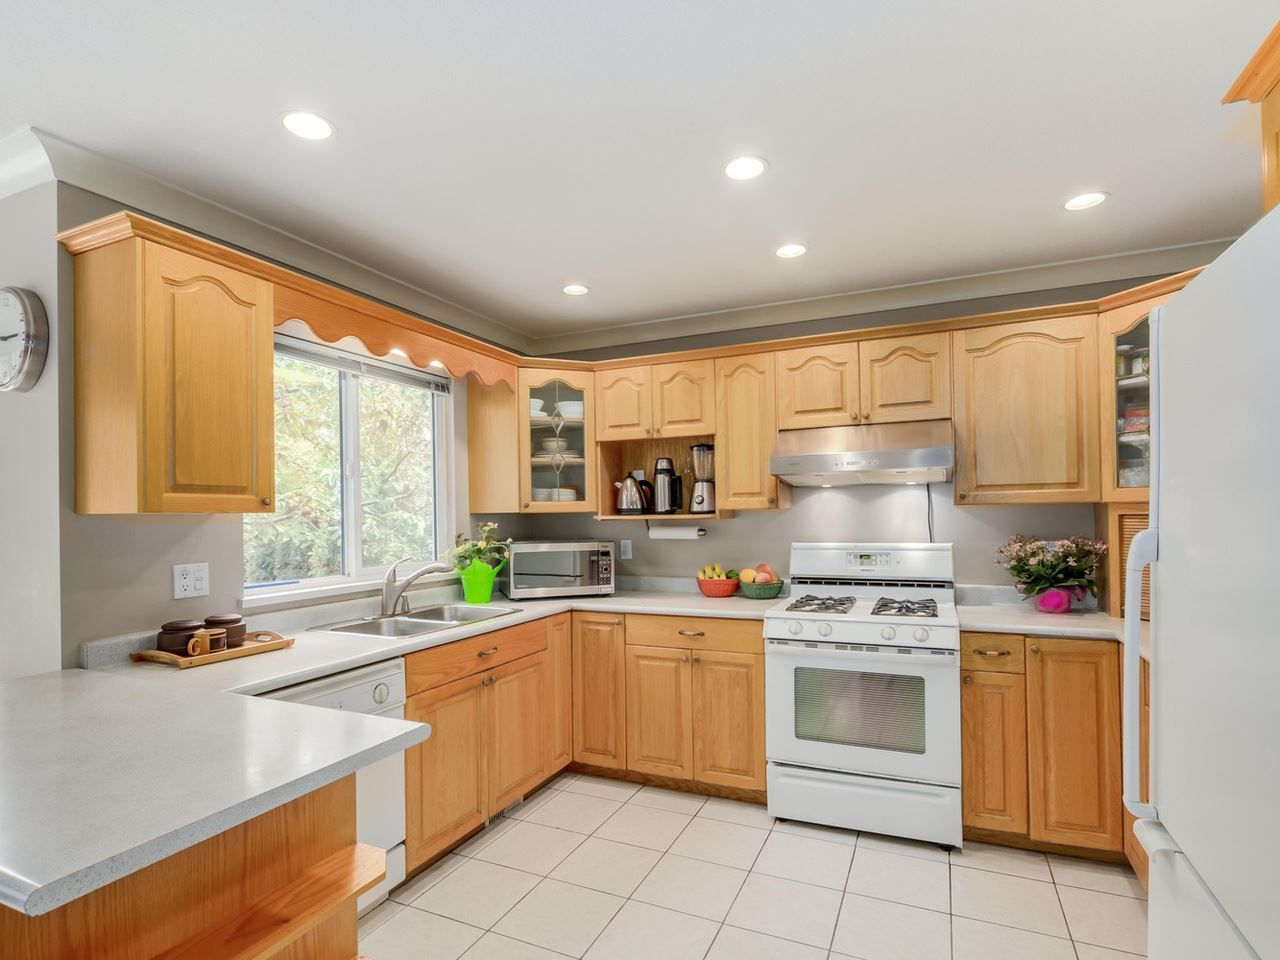 """Photo 6: Photos: 8238 149 Street in Surrey: Bear Creek Green Timbers House for sale in """"SHAUGHNESSY"""" : MLS®# R2078750"""